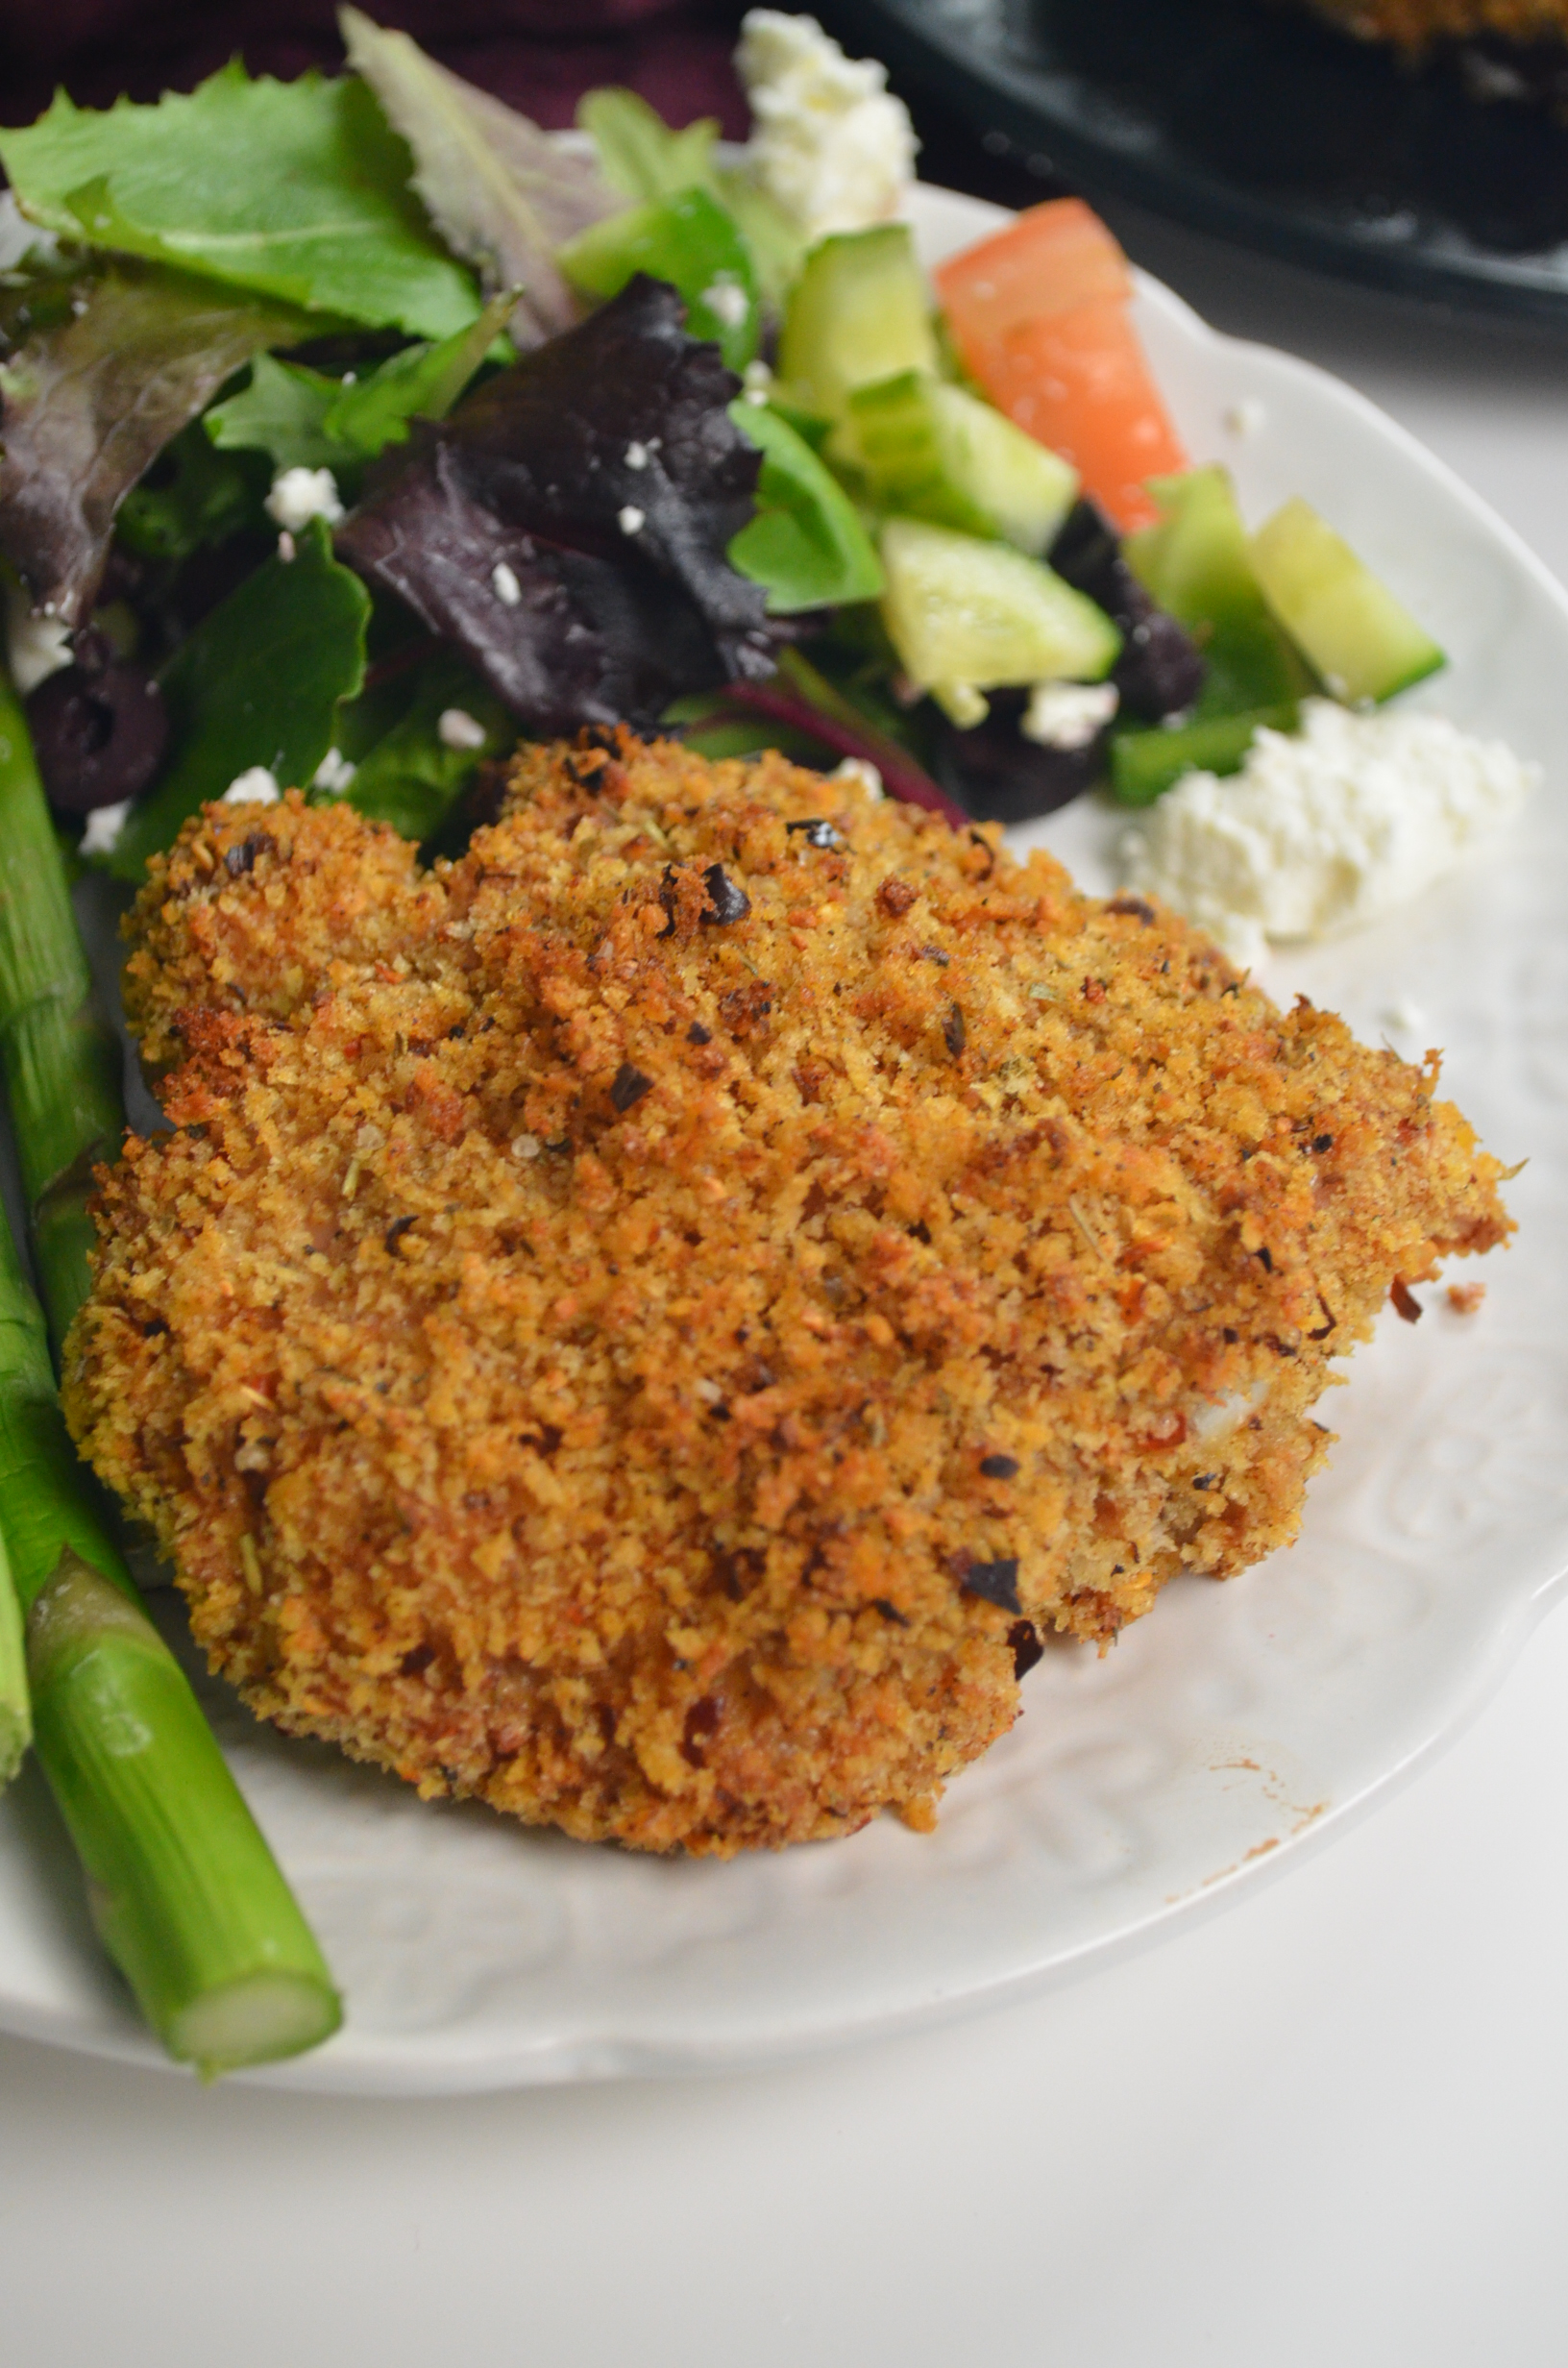 Baked Panko Crusted Chicken